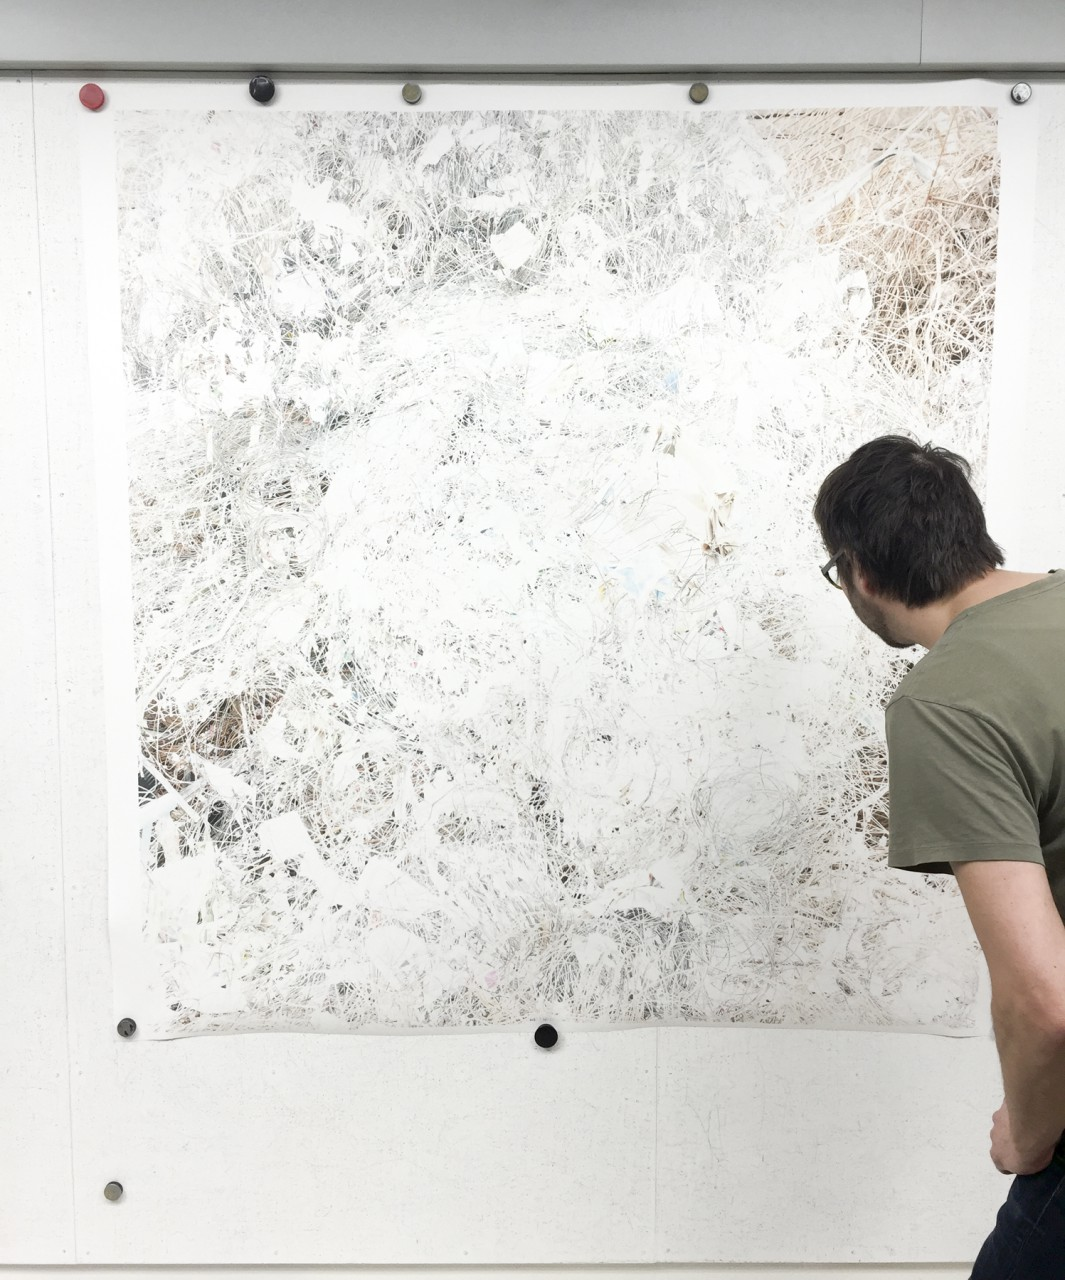 Andreas Gefeller | On location | Checking Photograph